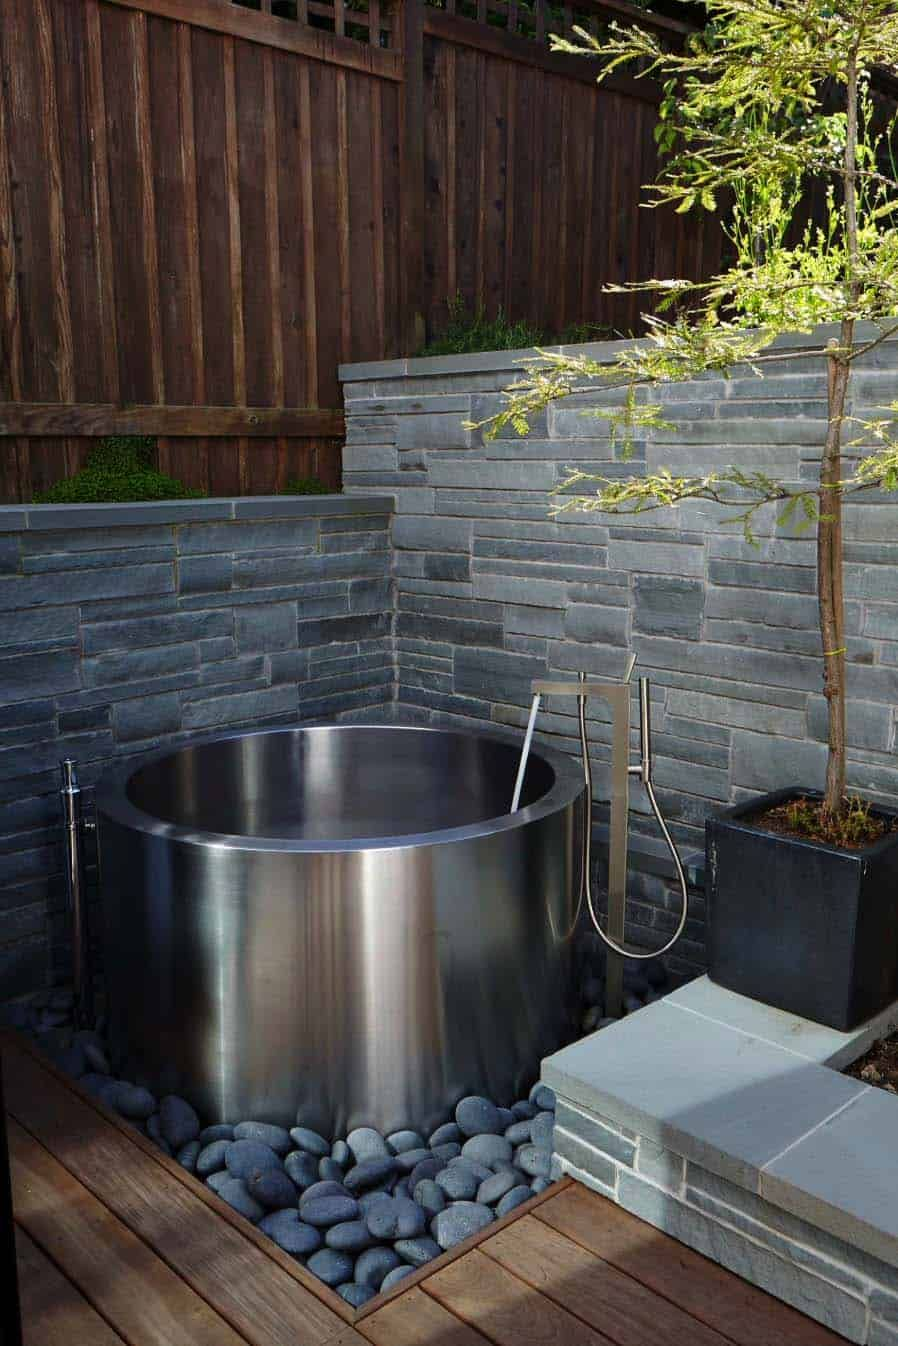 28 Most Incredible Outdoor Tub Ideas For An Invigorating